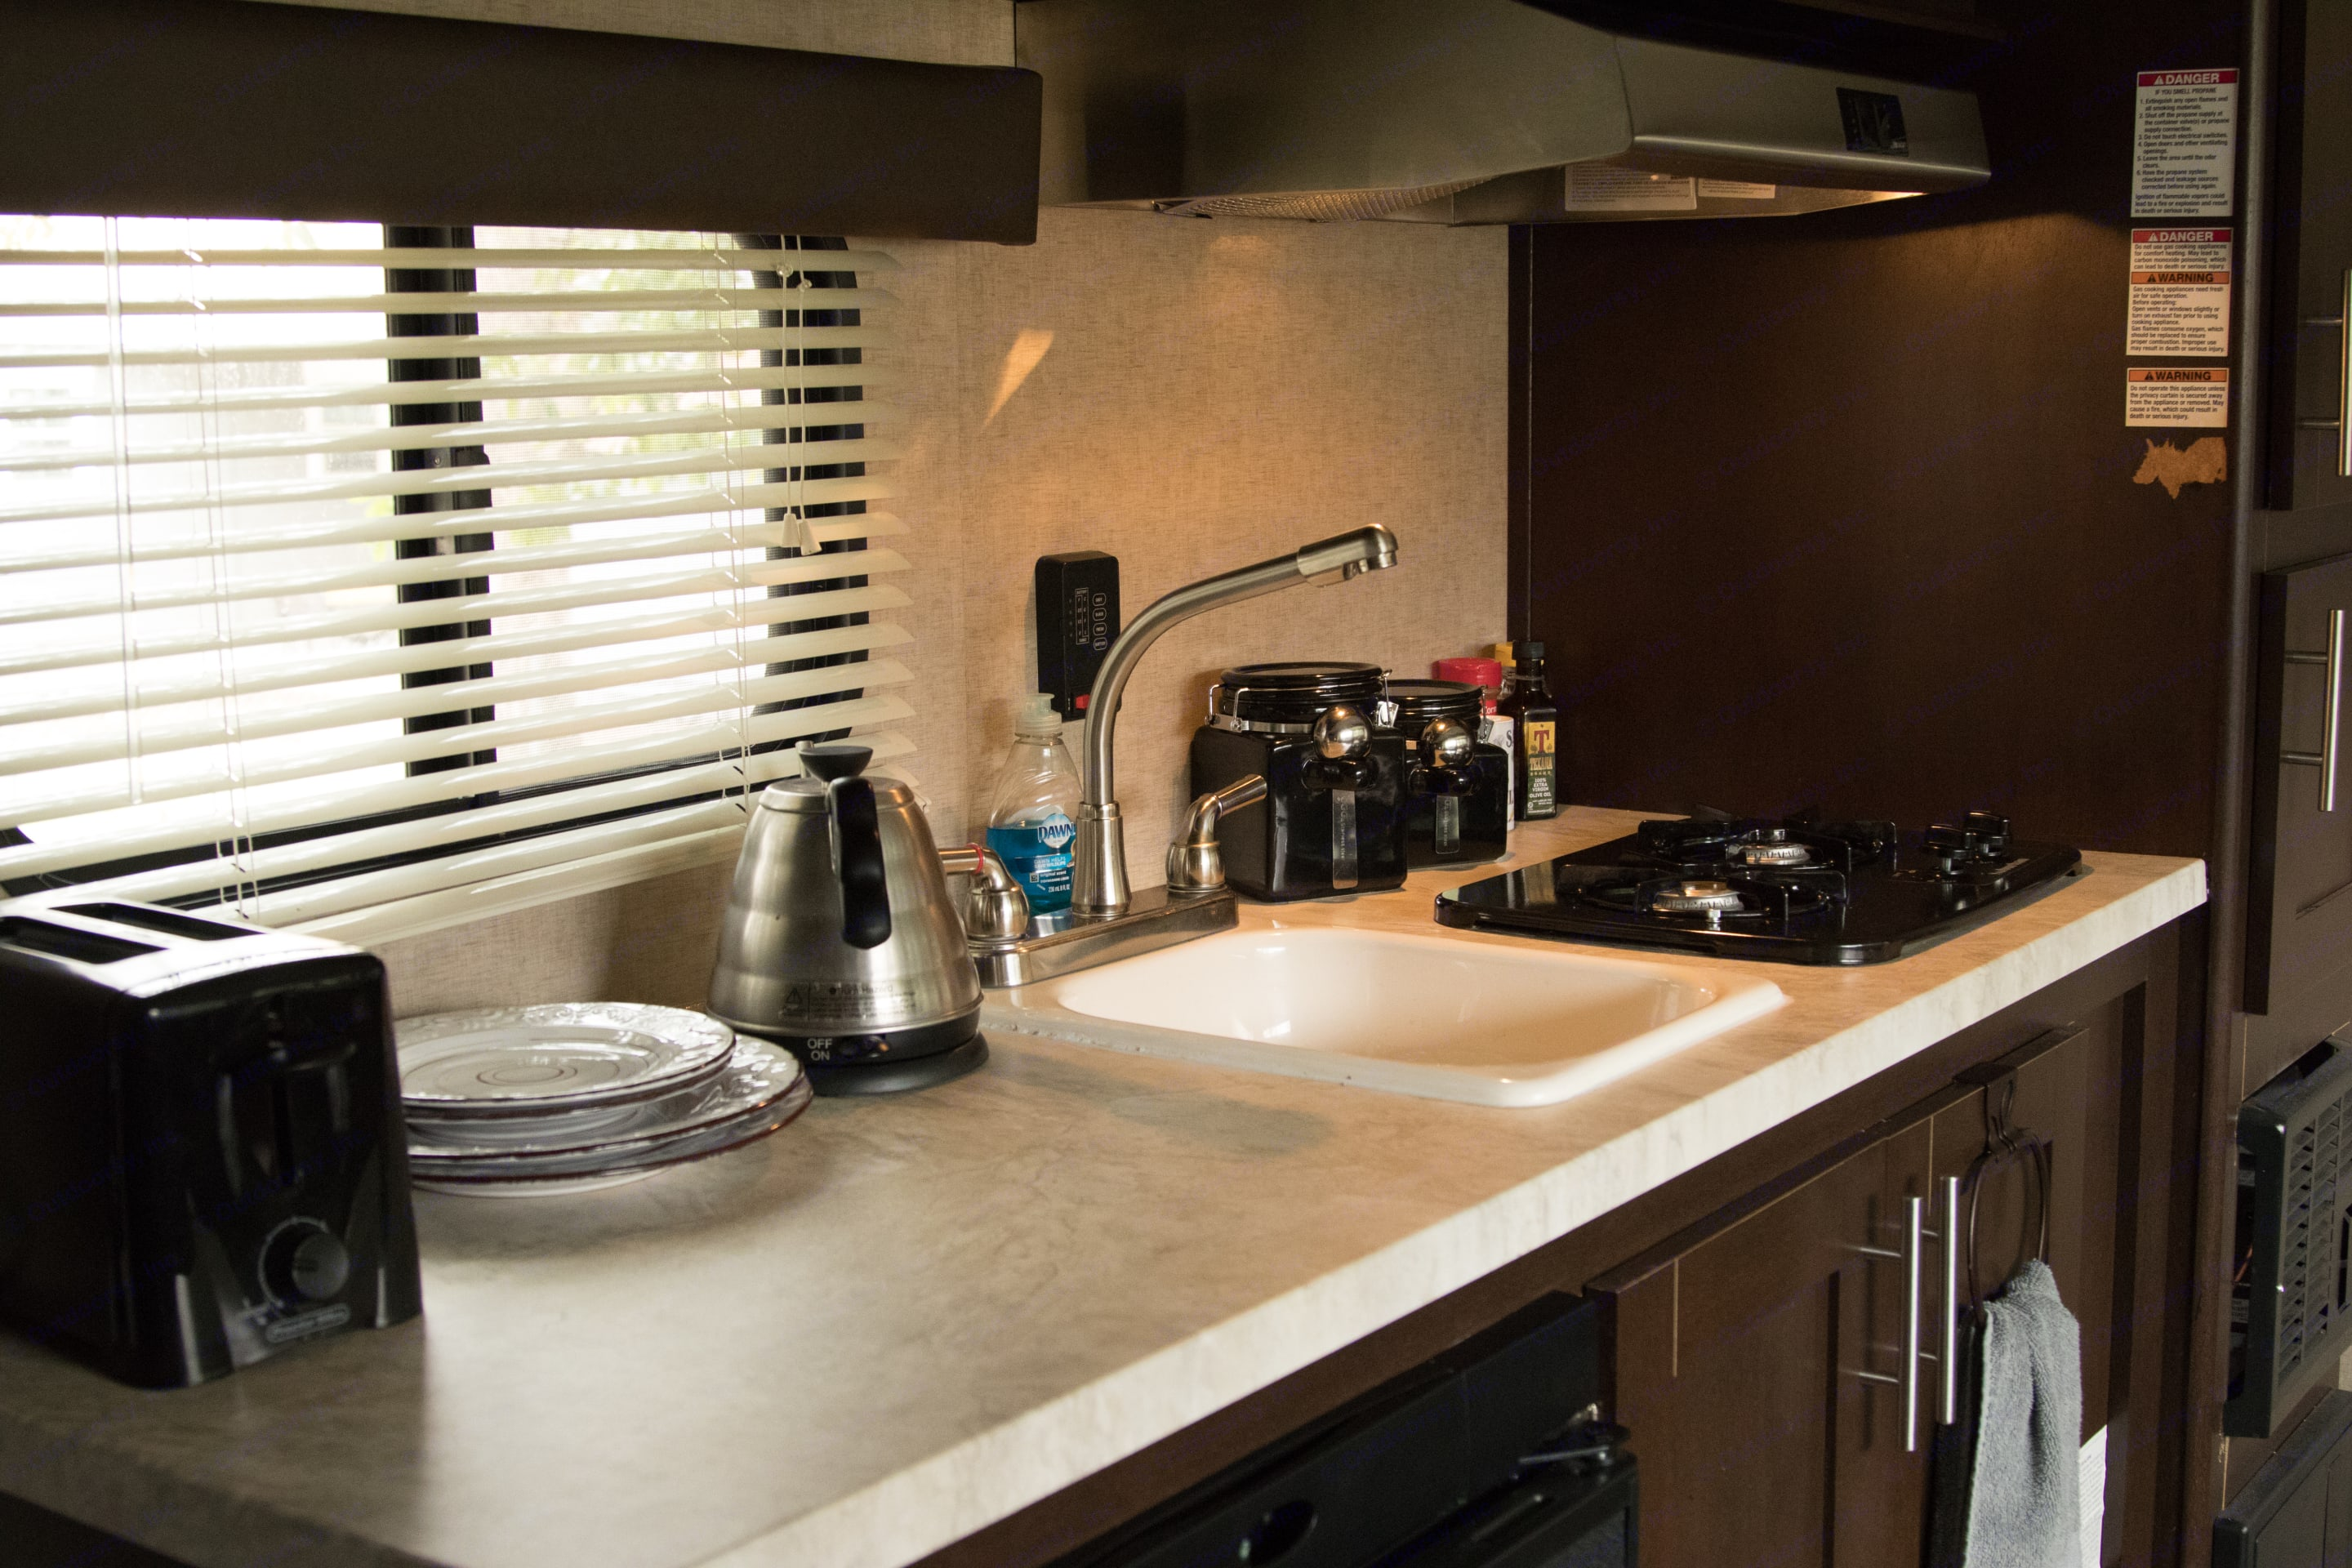 The kitchen includes a two range stove with vented hook, sink with tall faucet, and refrigerator that can run on electricity or propane.. Forest River Cherokee Wolf Pup 2017